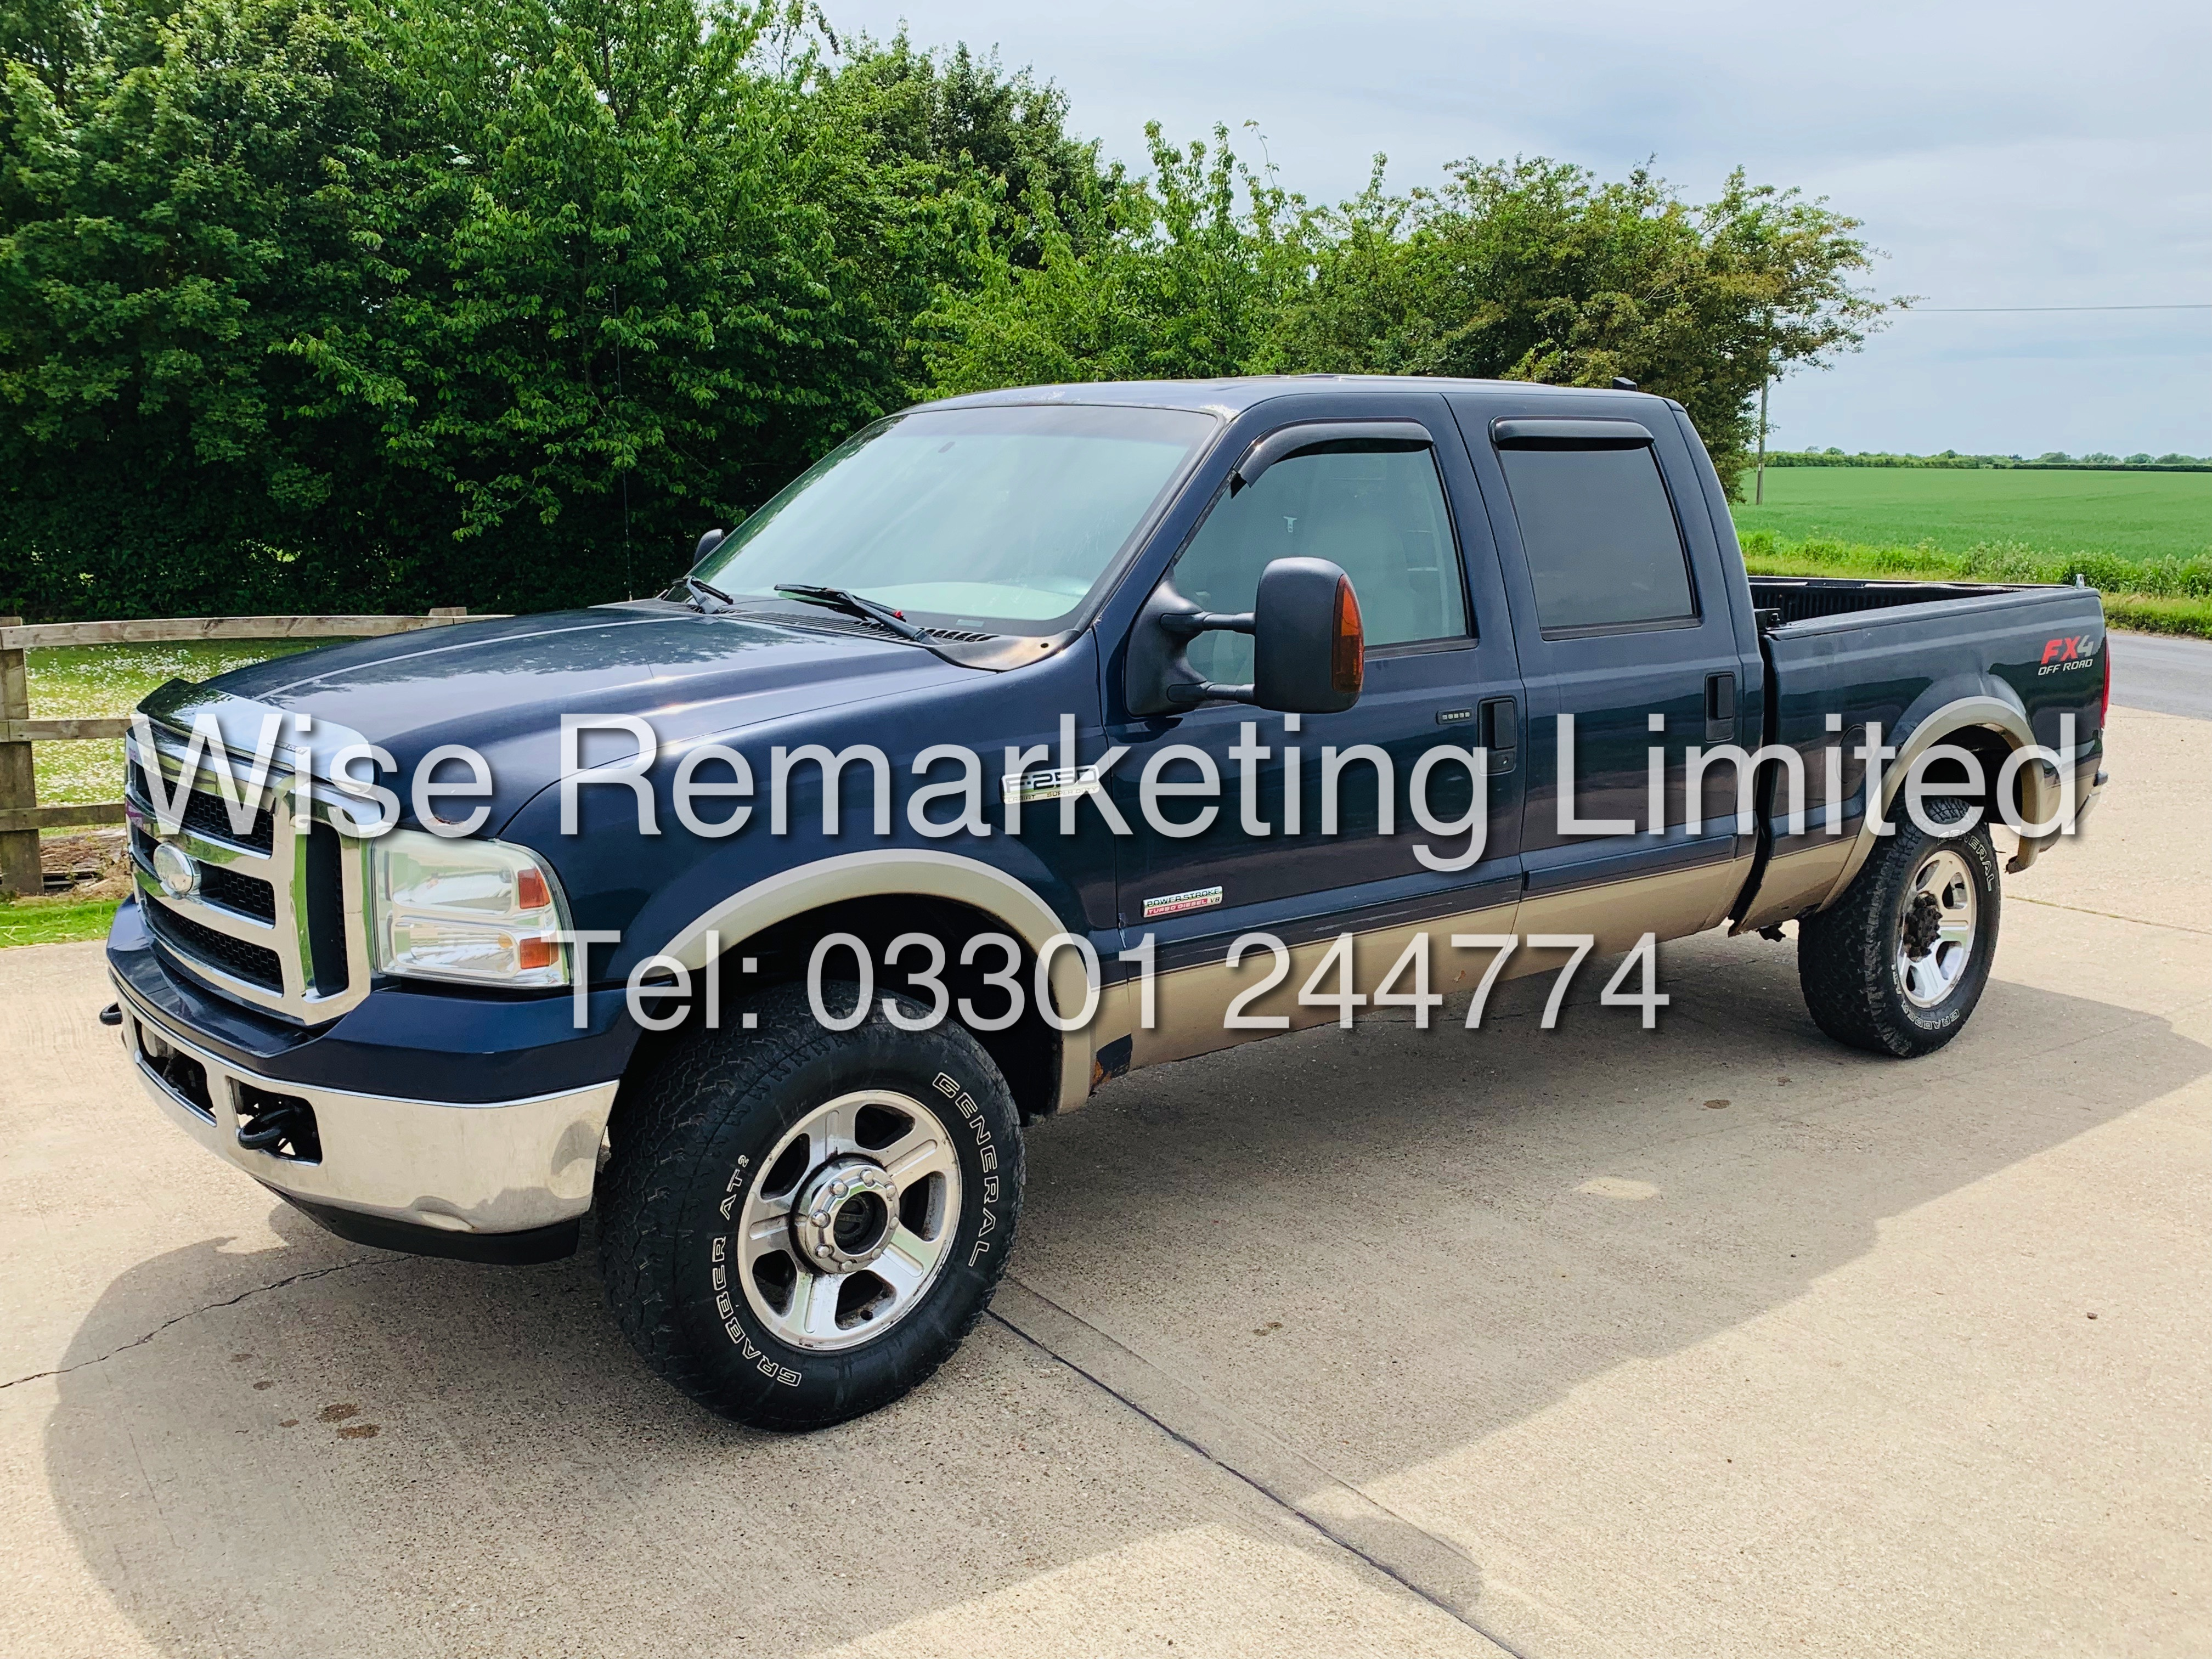 FORD F-250 6.0L V8**DIESEL**2007**4X4*LARIAT SPEC**DOUBLE-CAB**ULTRA RARE**FRESH IMPORT** - Image 6 of 18